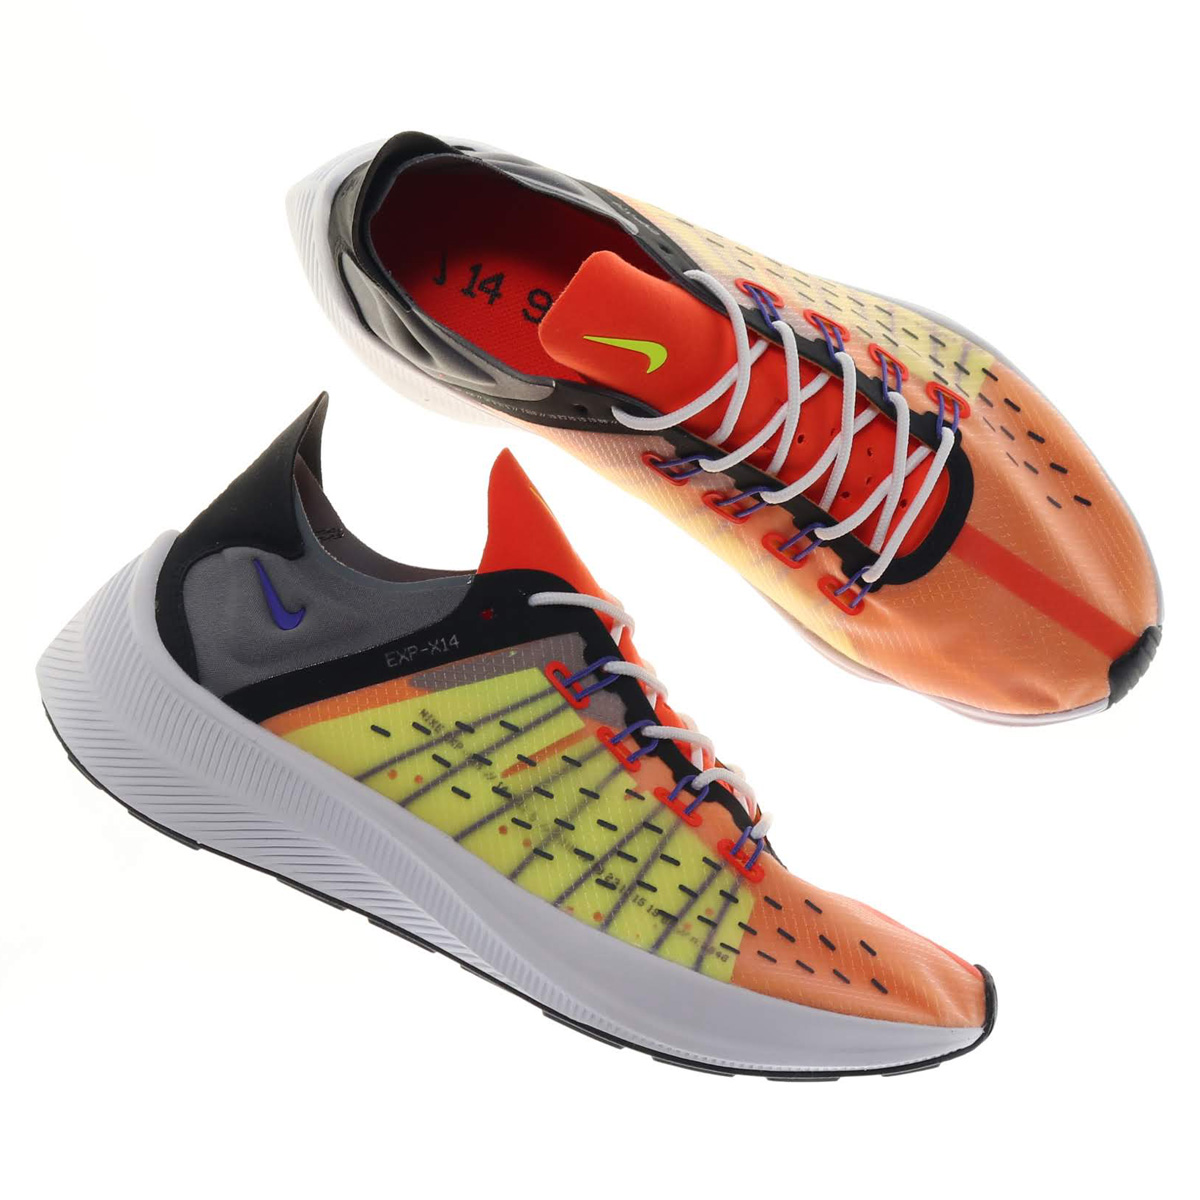 NIKE EXP-X14 (ナイキ EXP-X14)TEAM ORANGE/PERSIAN VIOLET-VOLT-BLACK【メンズ レディース スニーカー】18FA-I